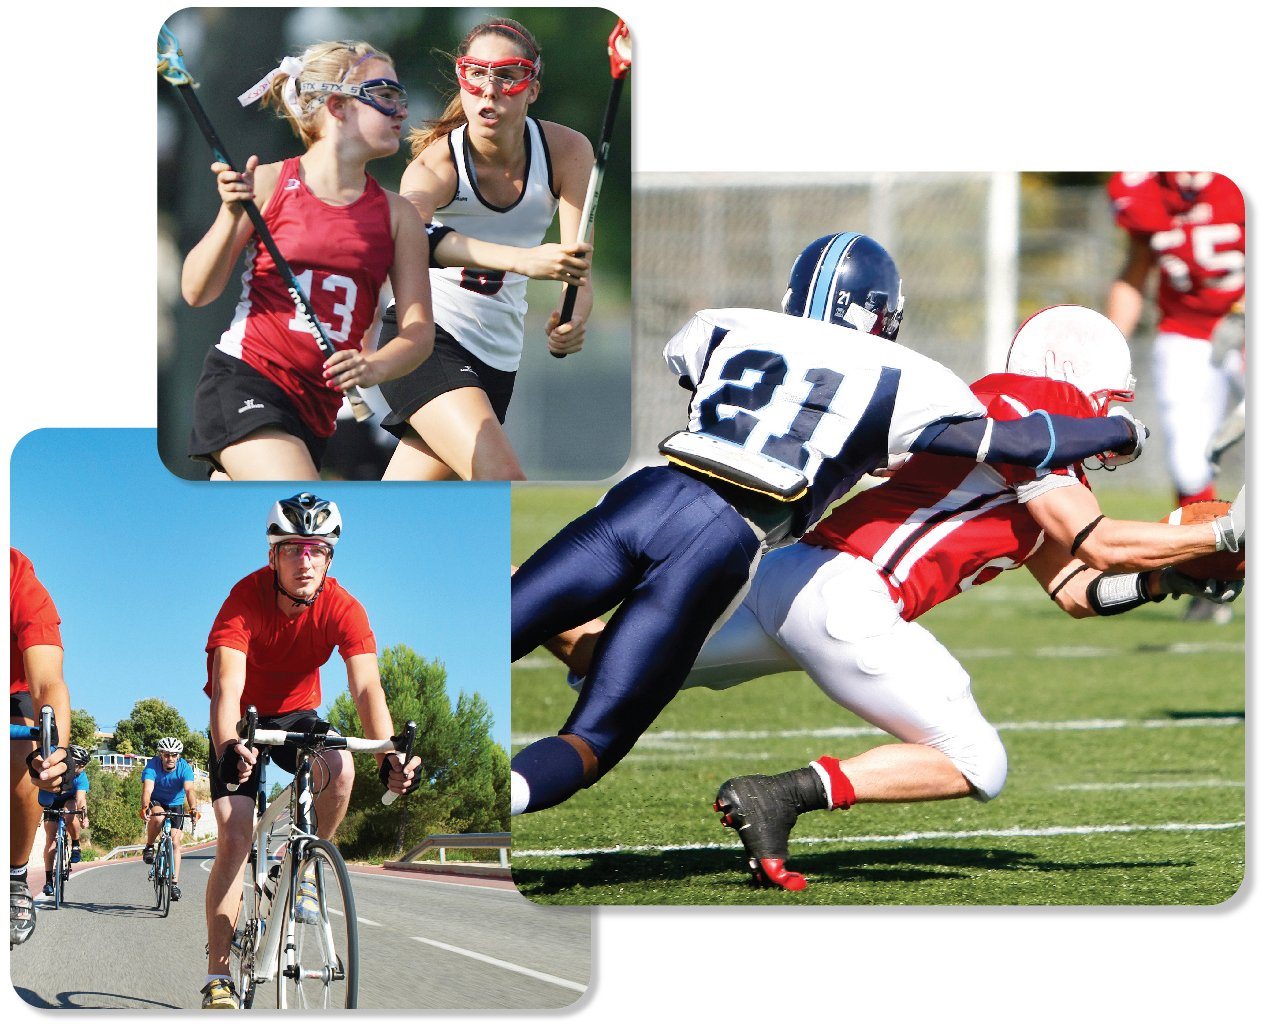 Sports with Concussion Risk - Collage